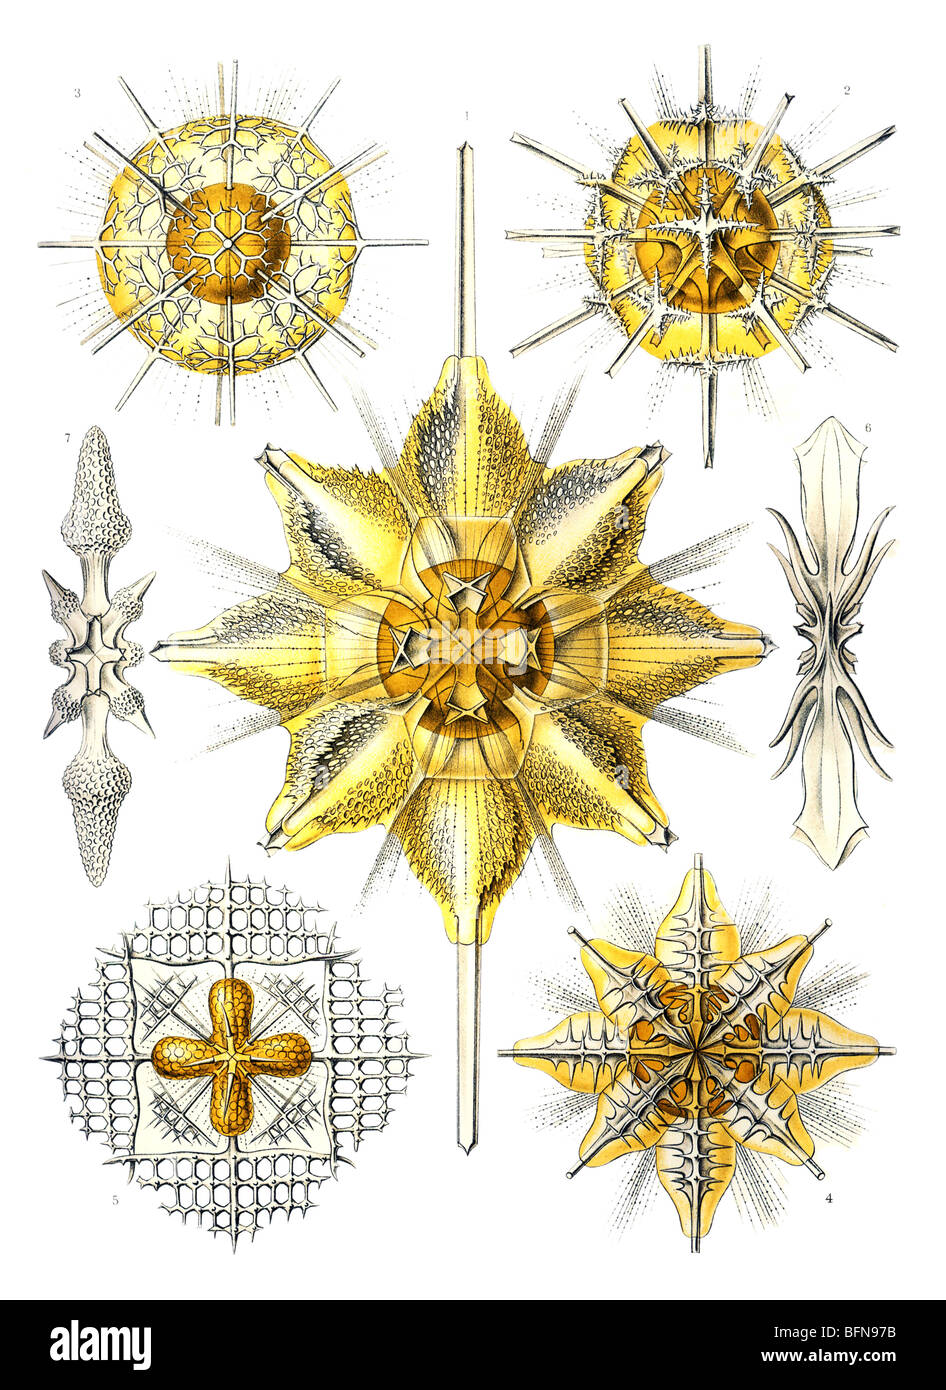 The 21st plate from Ernst Haeckel's Kunstformen der Natur (1904), depicting radiolarians classified as Acanthometra. - Stock Image